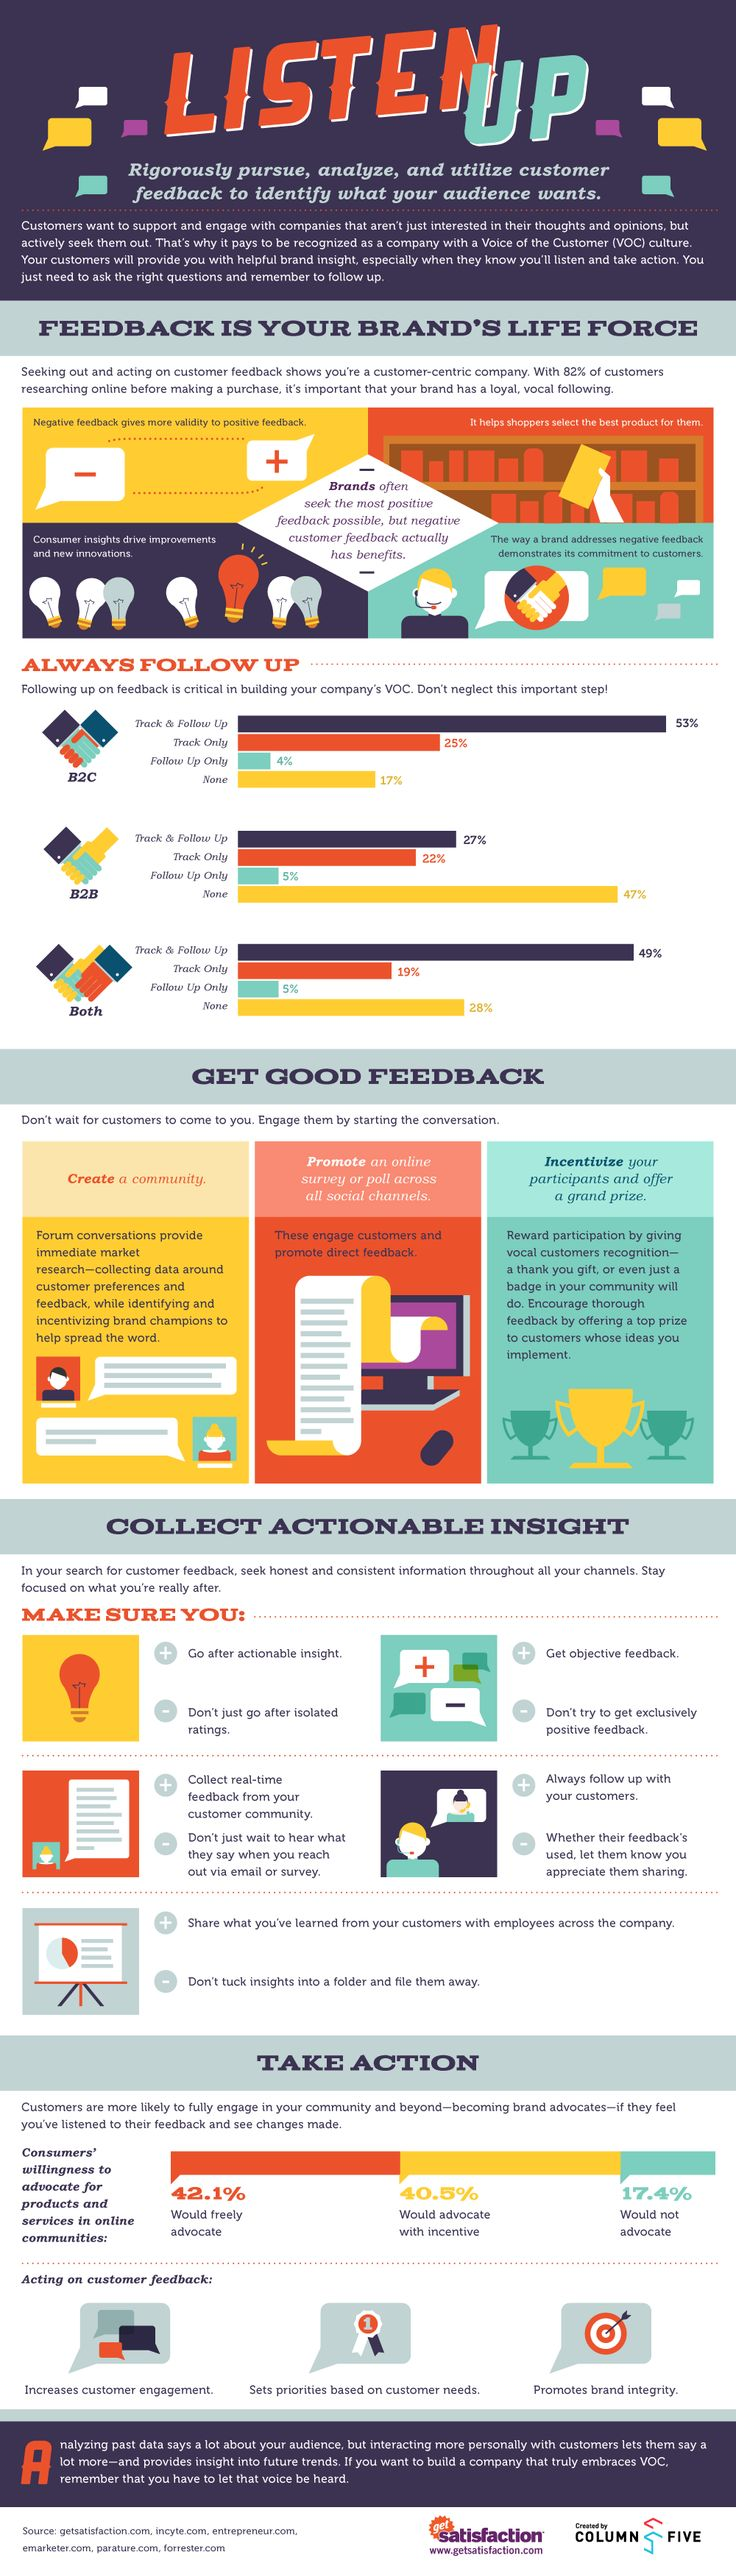 Listen Up And Utilize Customer #Feedback To Identify What Your Audience Wants #infographic  #Customer